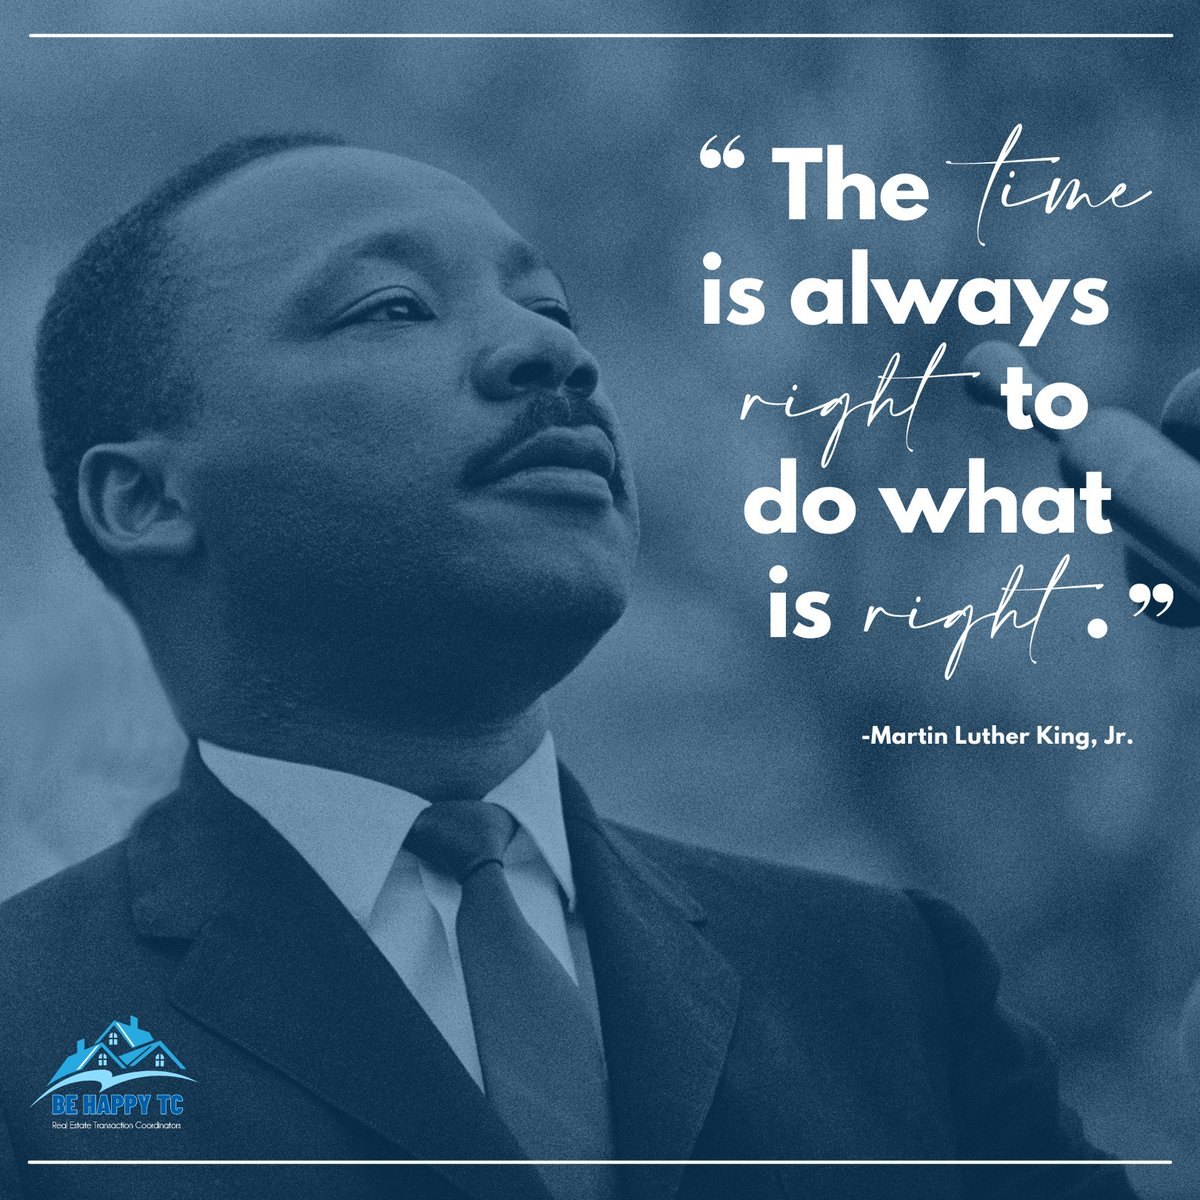 As we celebrate Dr. Martin Luther King, Jr. and his contributions, we remember his tireless advocacy and vision for a more just and compassionate country.  #MLKDay #MartinLutherKingJr #quoteoftheday #transactioncoordinators #realtorservices #realestatetransactionservices